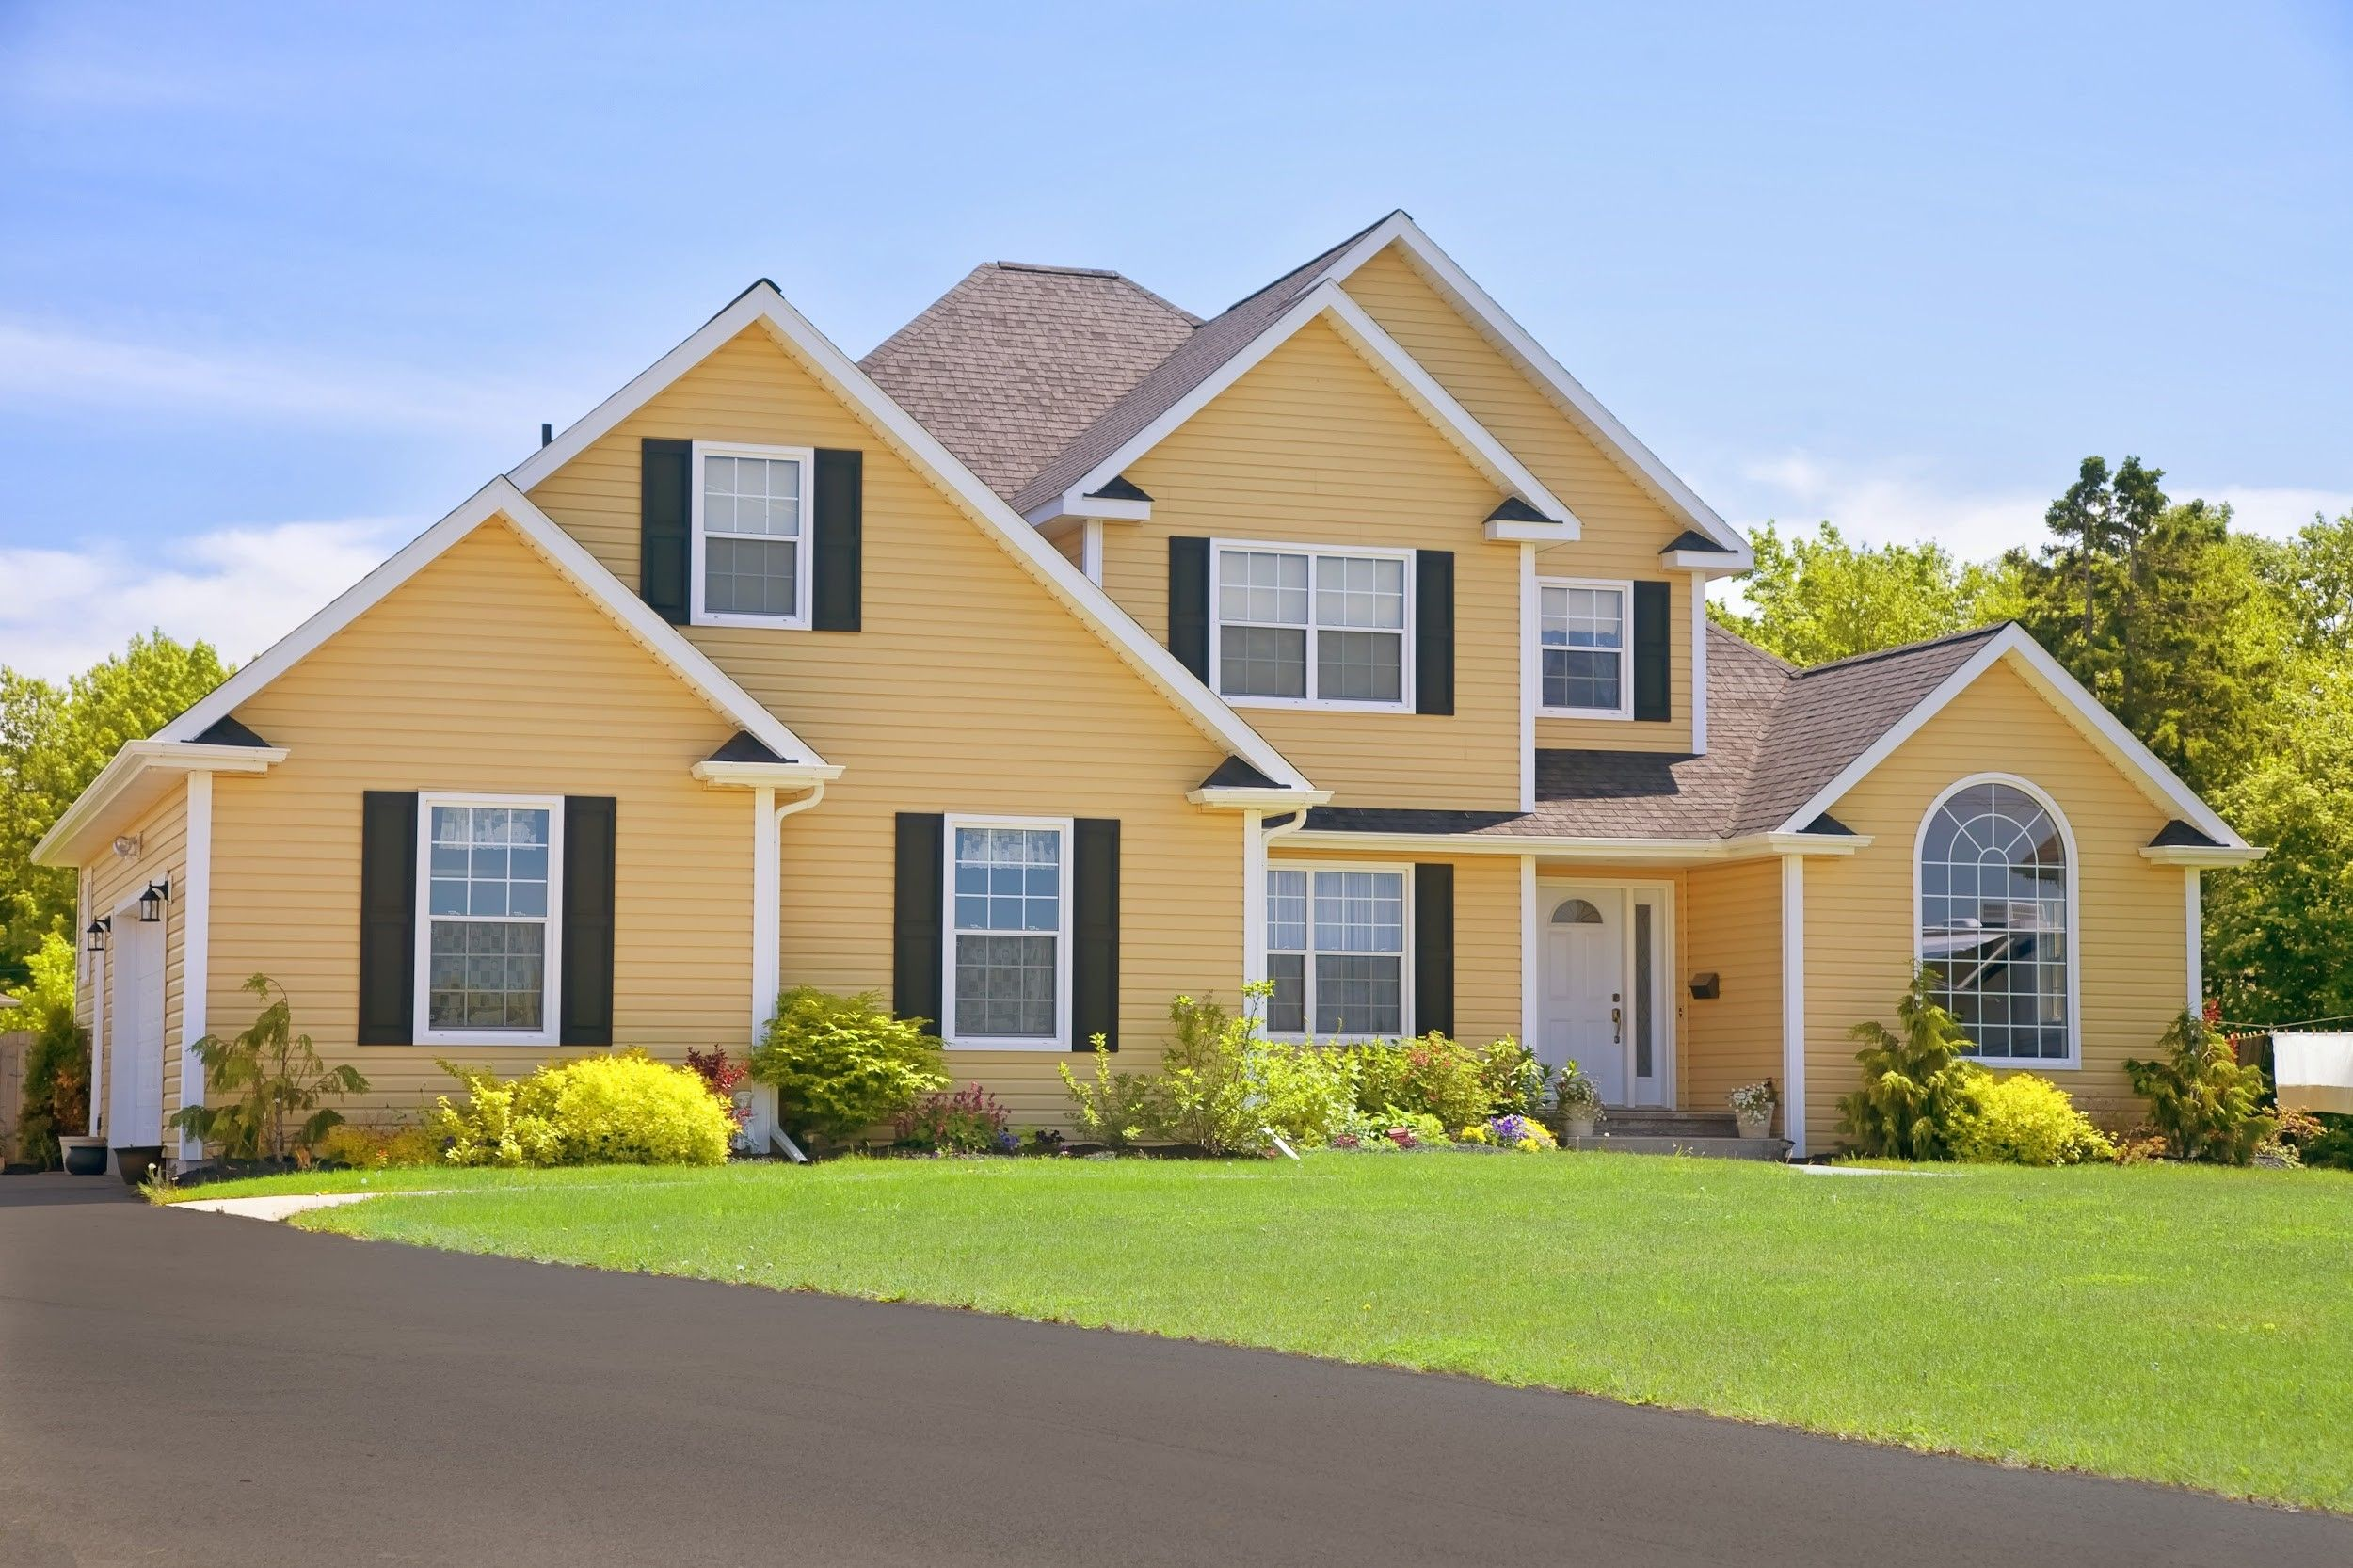 Did You Know That Vinyl Siding Has The Ability To Withstand High Winds And Resist Heat Cold And Moist In 2020 Home Improvement Loans Home Renovation Loan Vinyl Siding